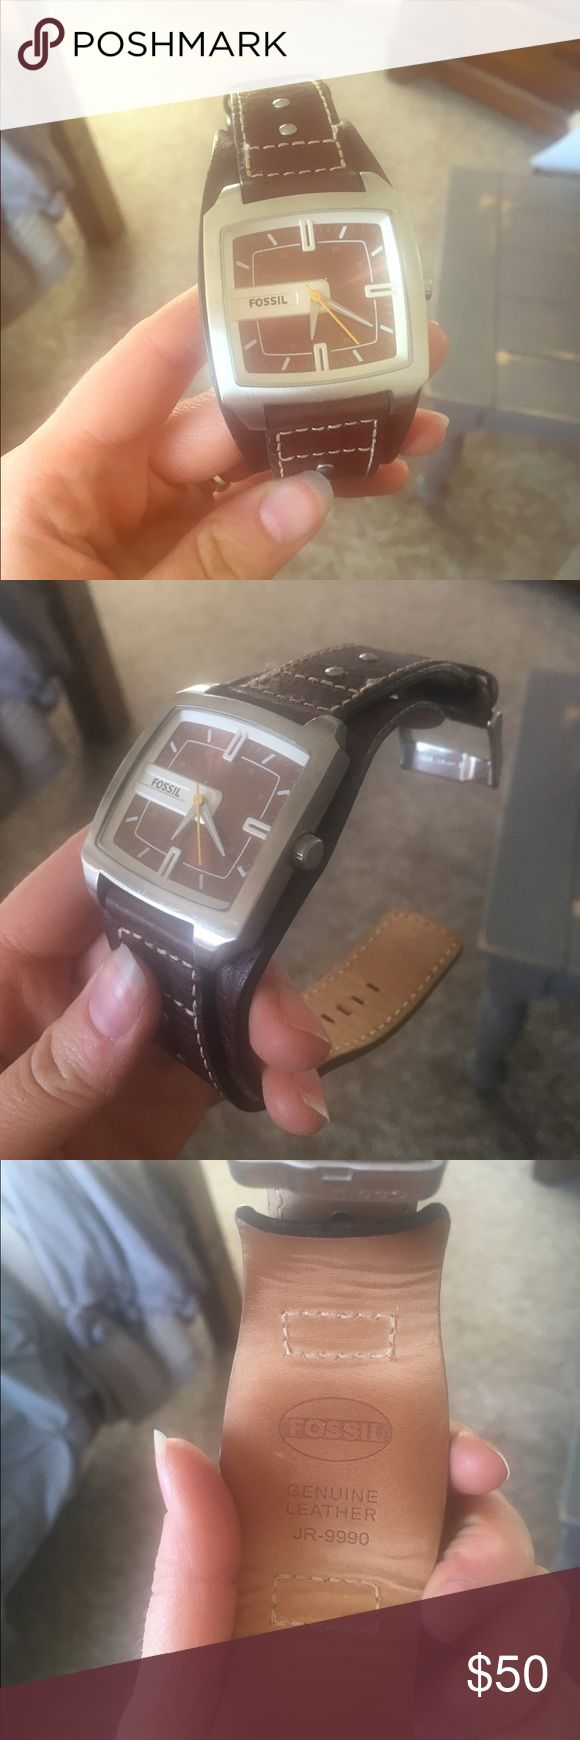 Fossil Leather Watch Men's Brown leather watch band with a brown watch face. He wore it once and it's in perfect condition. He just has too many watches Fossil Accessories Watches